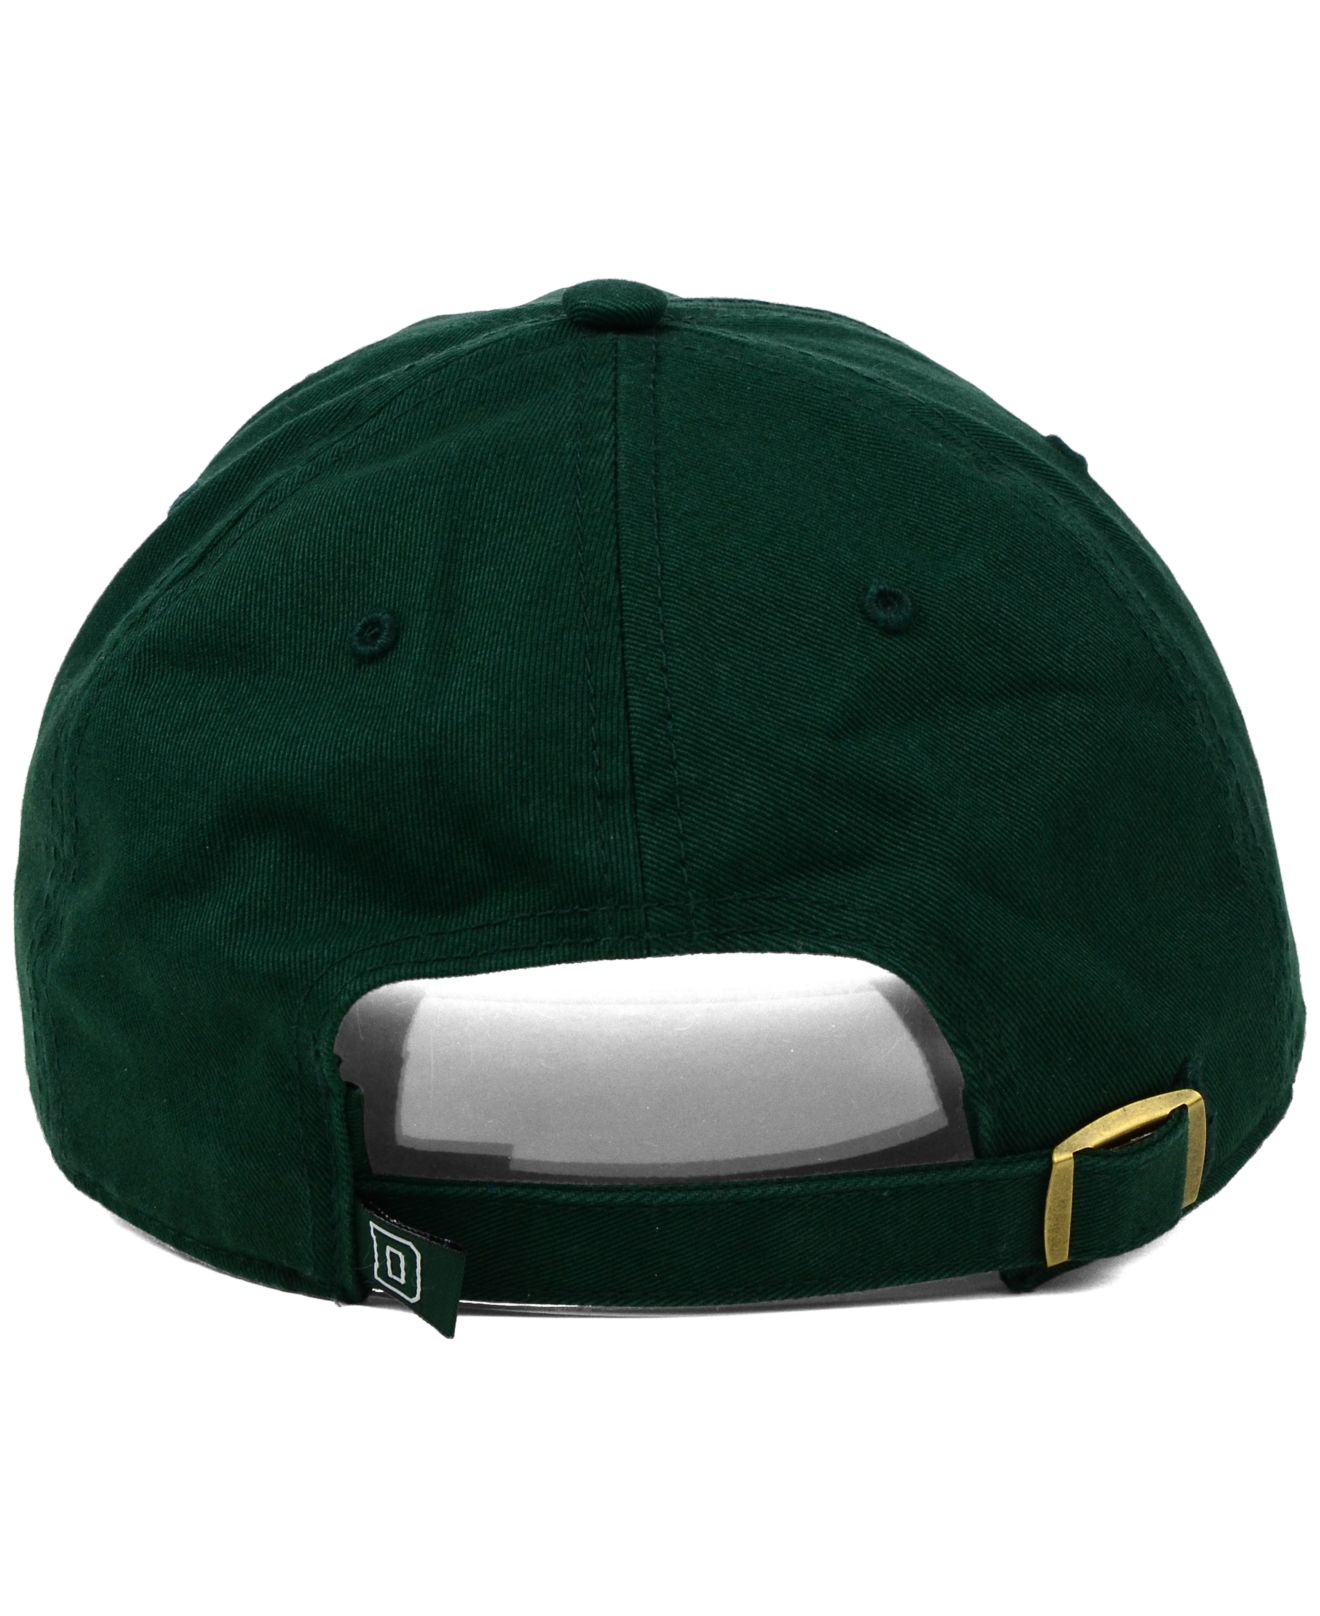 Big Green Egg Outdoor Kitchen: 47 Brand Dartmouth College Big Green Ncaa Clean-Up Cap In